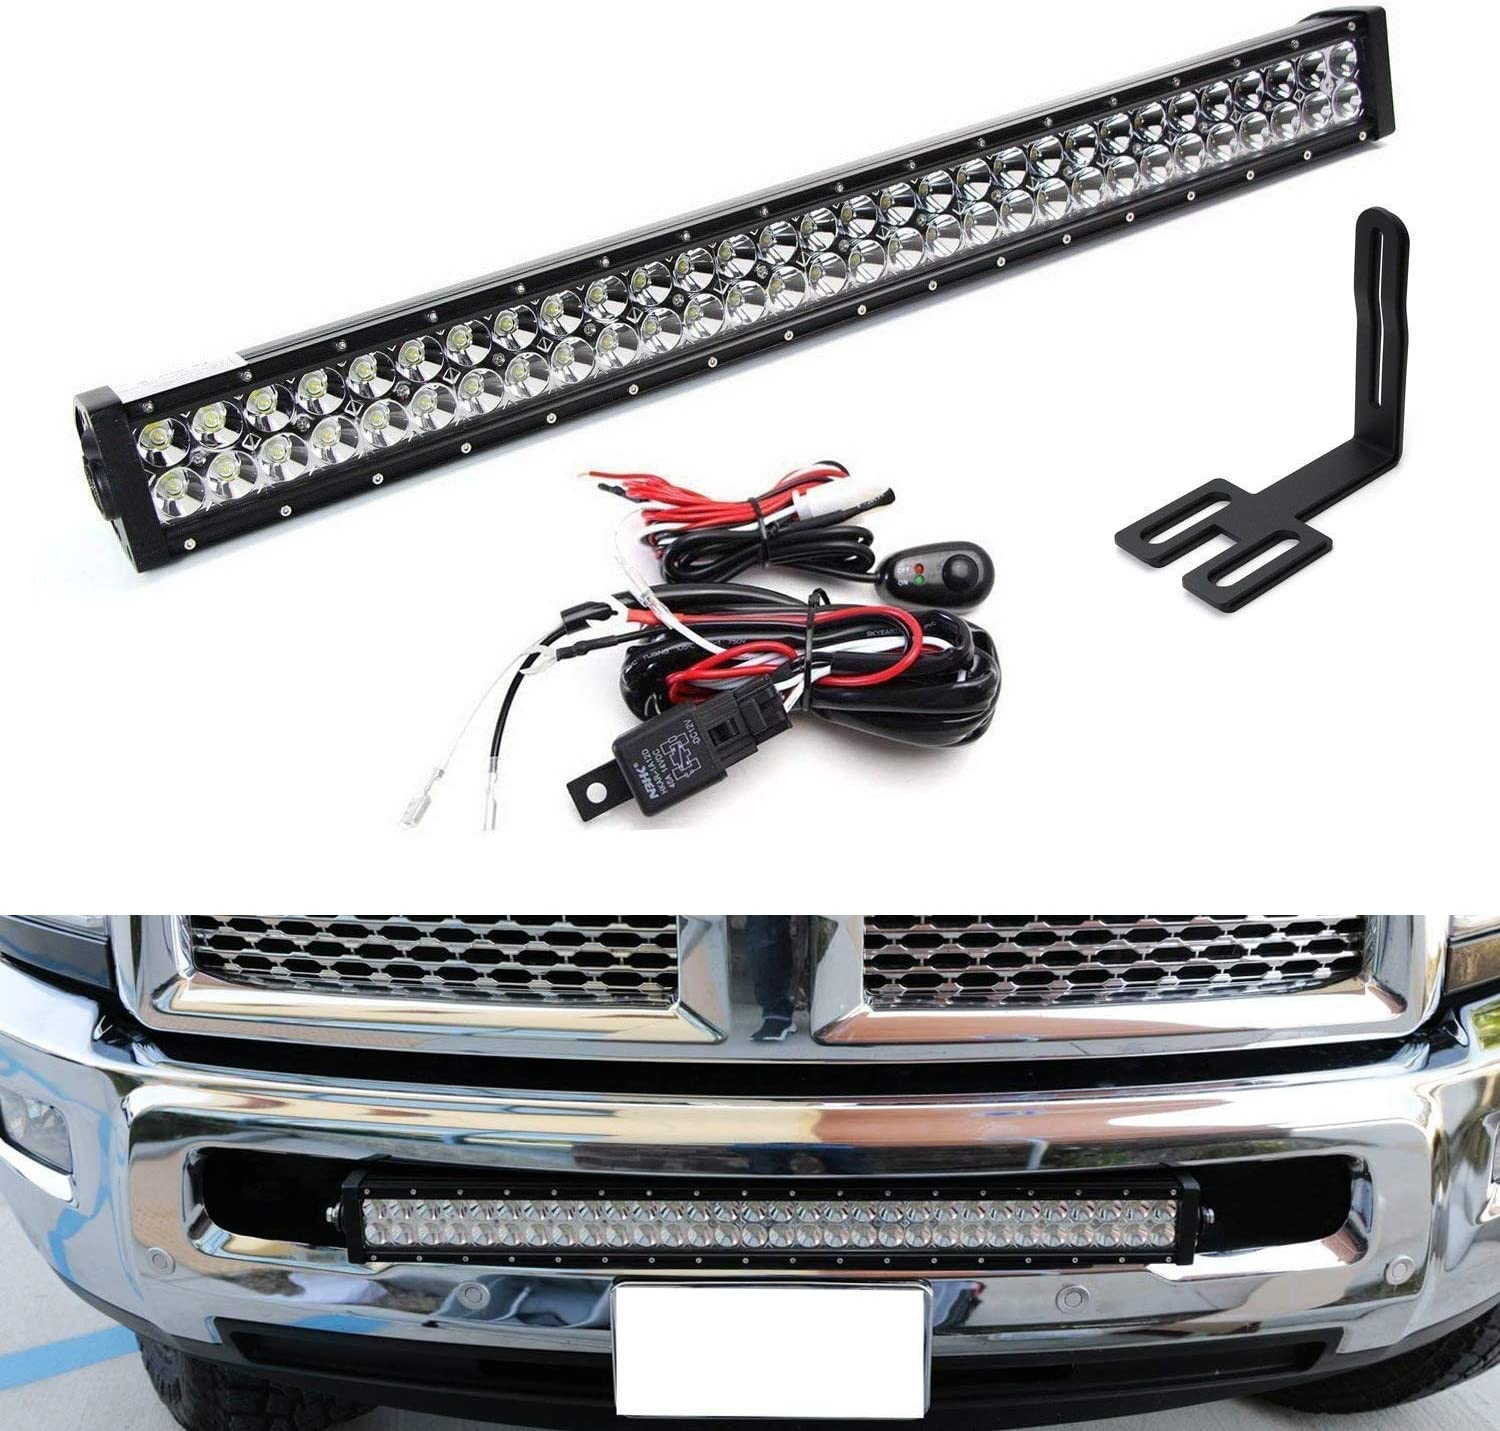 iJDMTOY Lower Grille 30-Inch LED Light Bar Compatible With 2003-18 Dodge RAM 2500 3500 HD, Includes (1) 180W High Power LED Lightbar, Lower Bumper Opening Mounting Brackets & On/Off Switch Wiring Kit